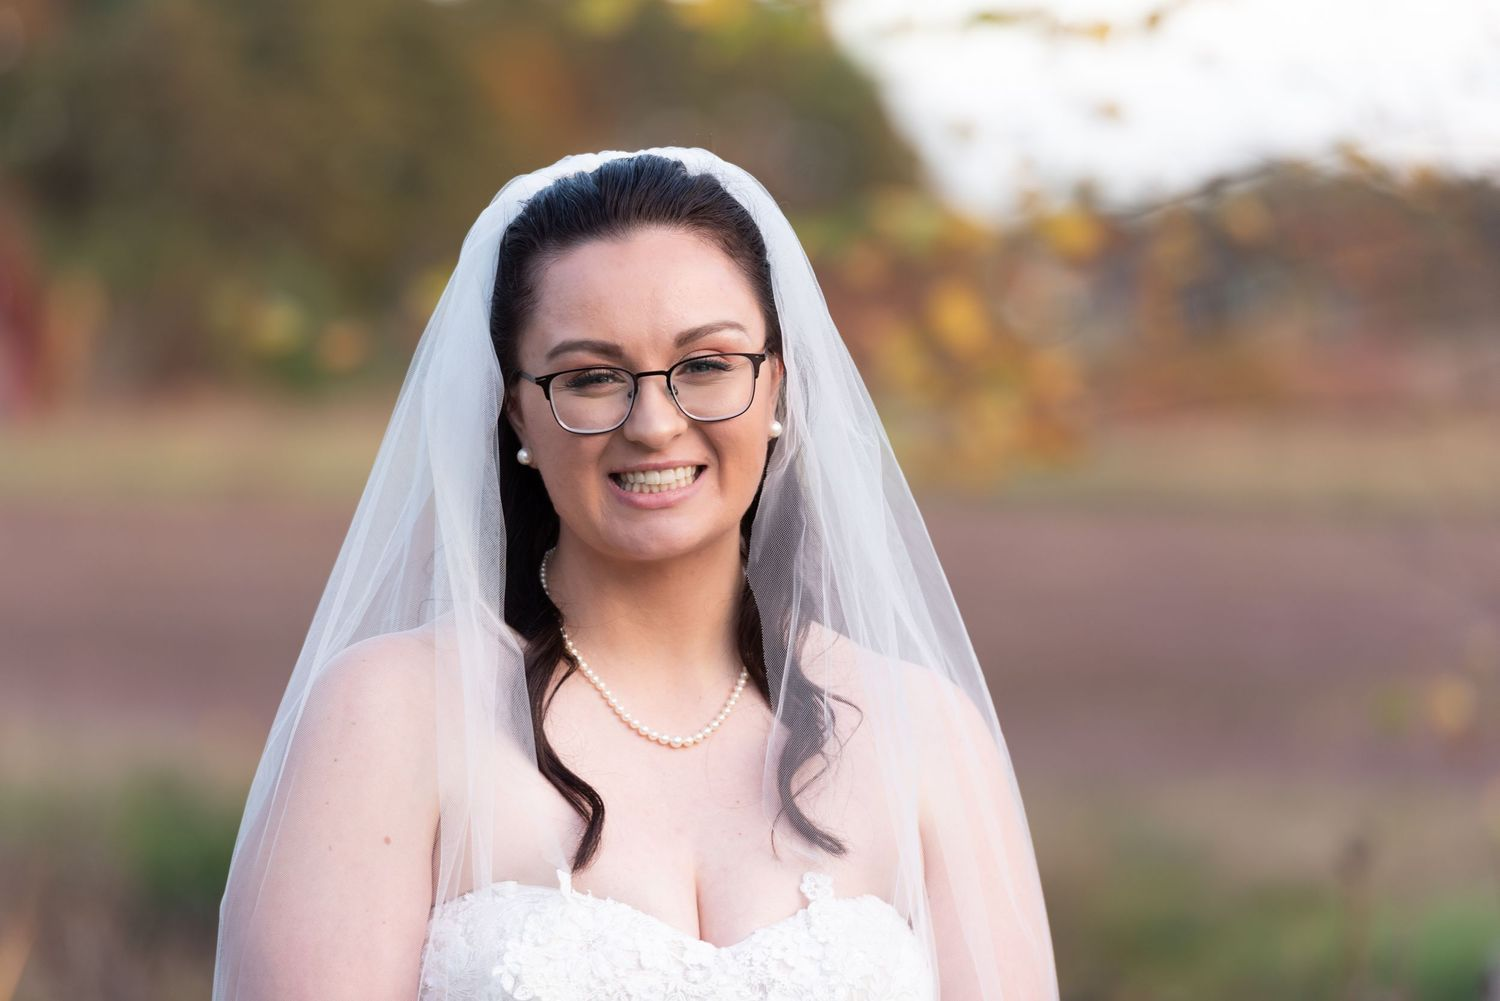 Leah Ramuglia Bride with veil smiles by cranberry bogs and fall foliage at Rosebrook Event Center in Wareham, MA